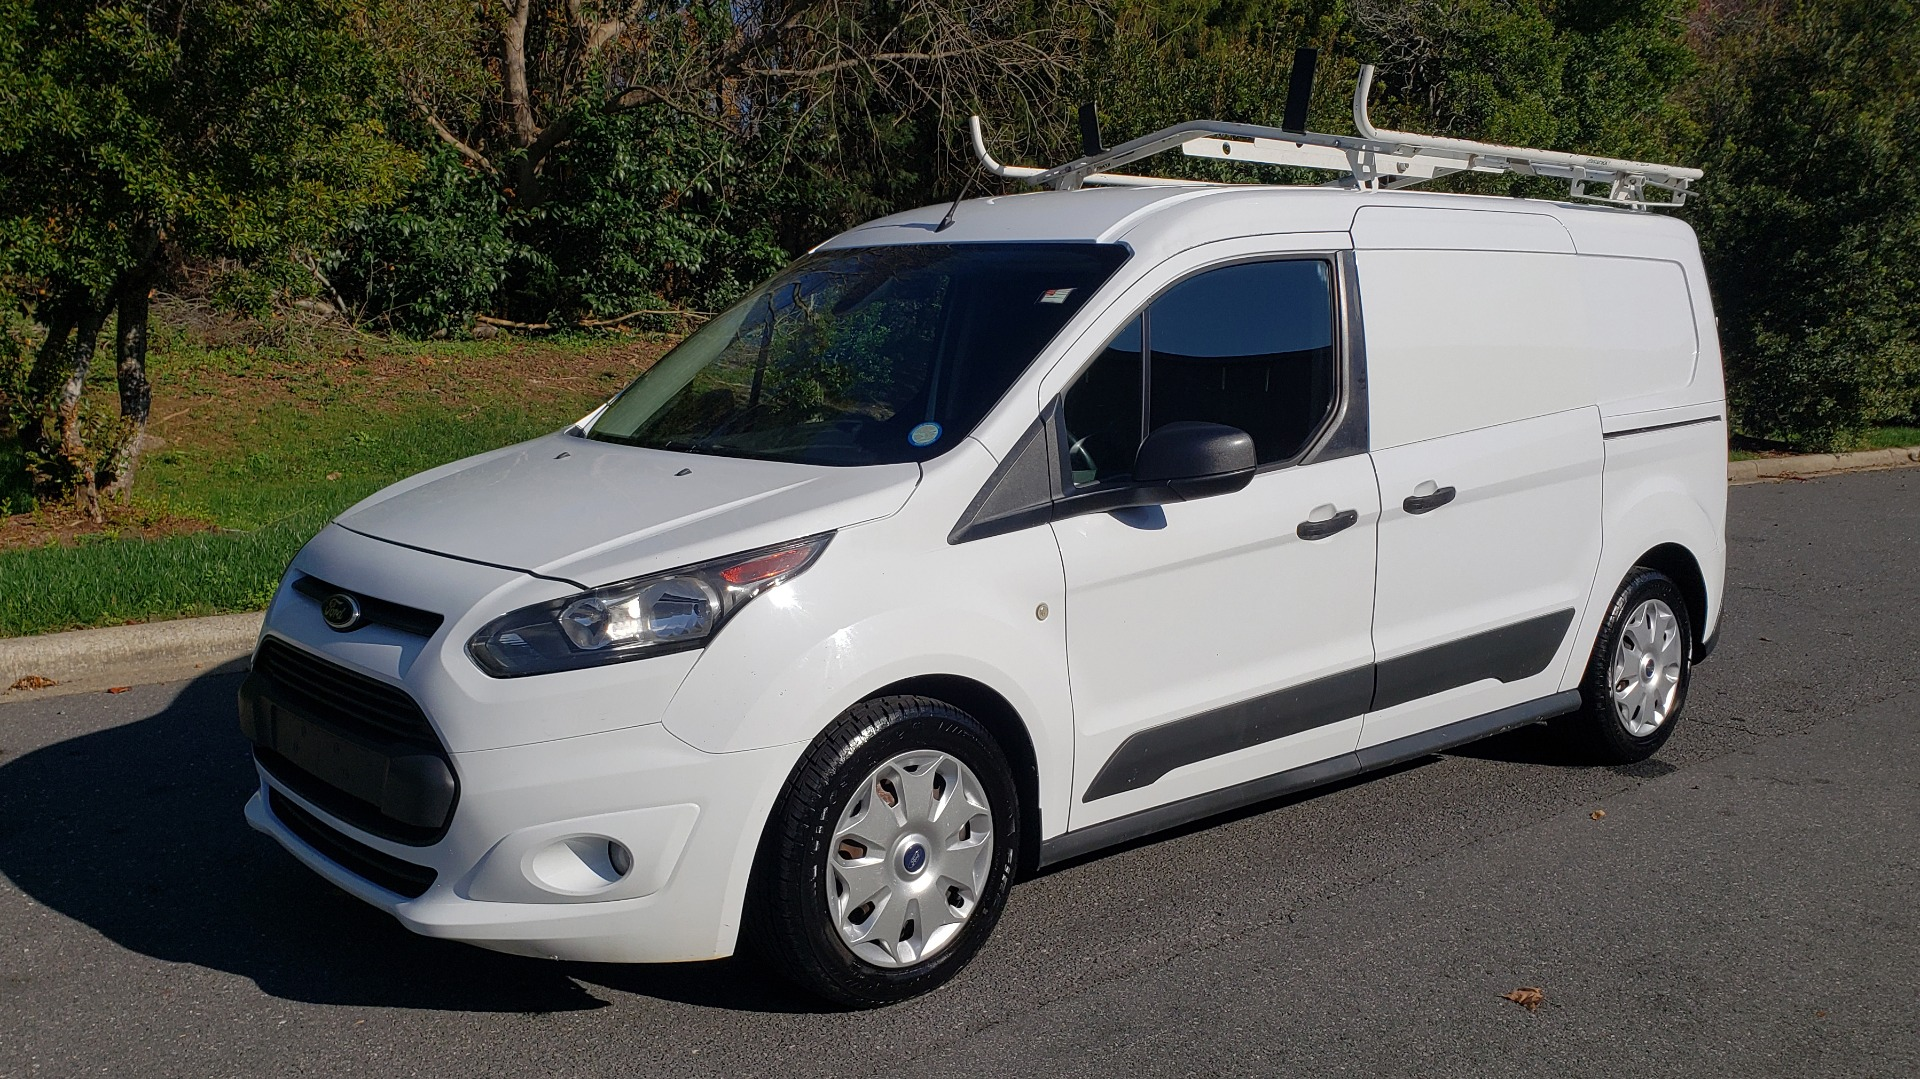 Used 2015 Ford TRANSIT CONNECT XLT CARGO VAN / 121-IN WB / 2.5L 4-CYL / AUTO / REARVIEW / WORK VAN for sale $10,995 at Formula Imports in Charlotte NC 28227 1